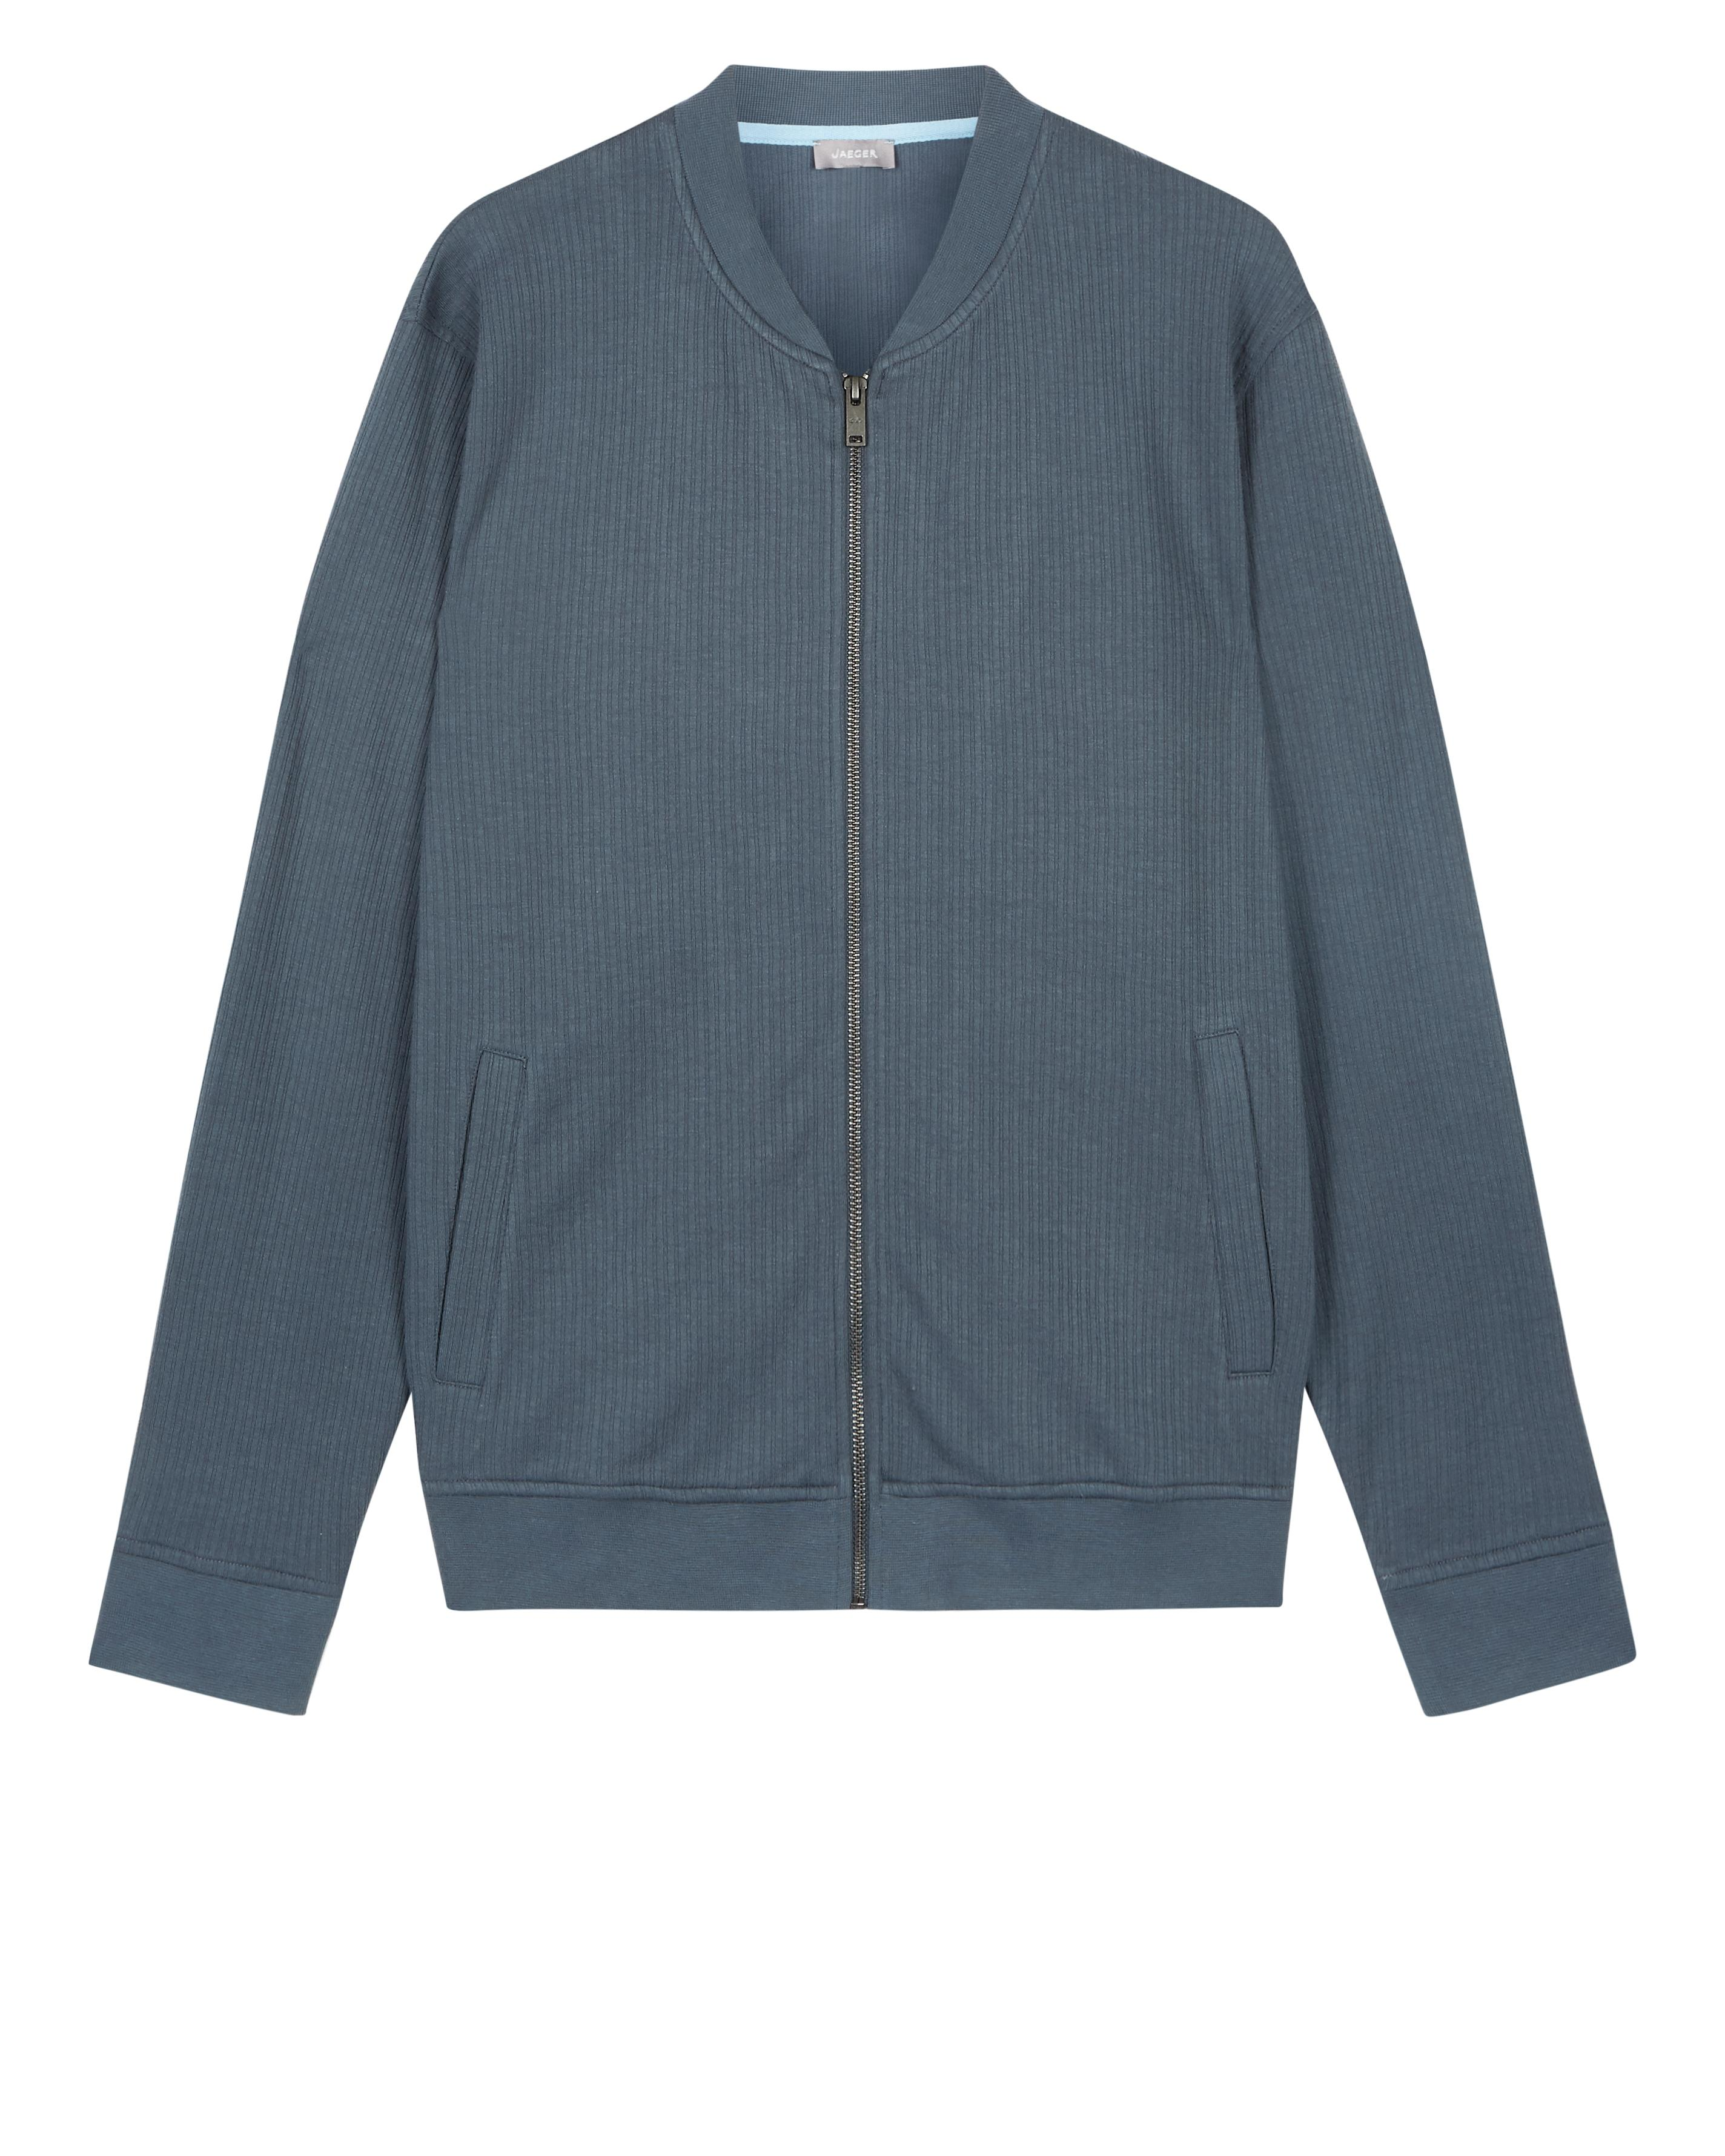 Jaeger Cotton Micro Texture Jersey Bomber in Blue for Men